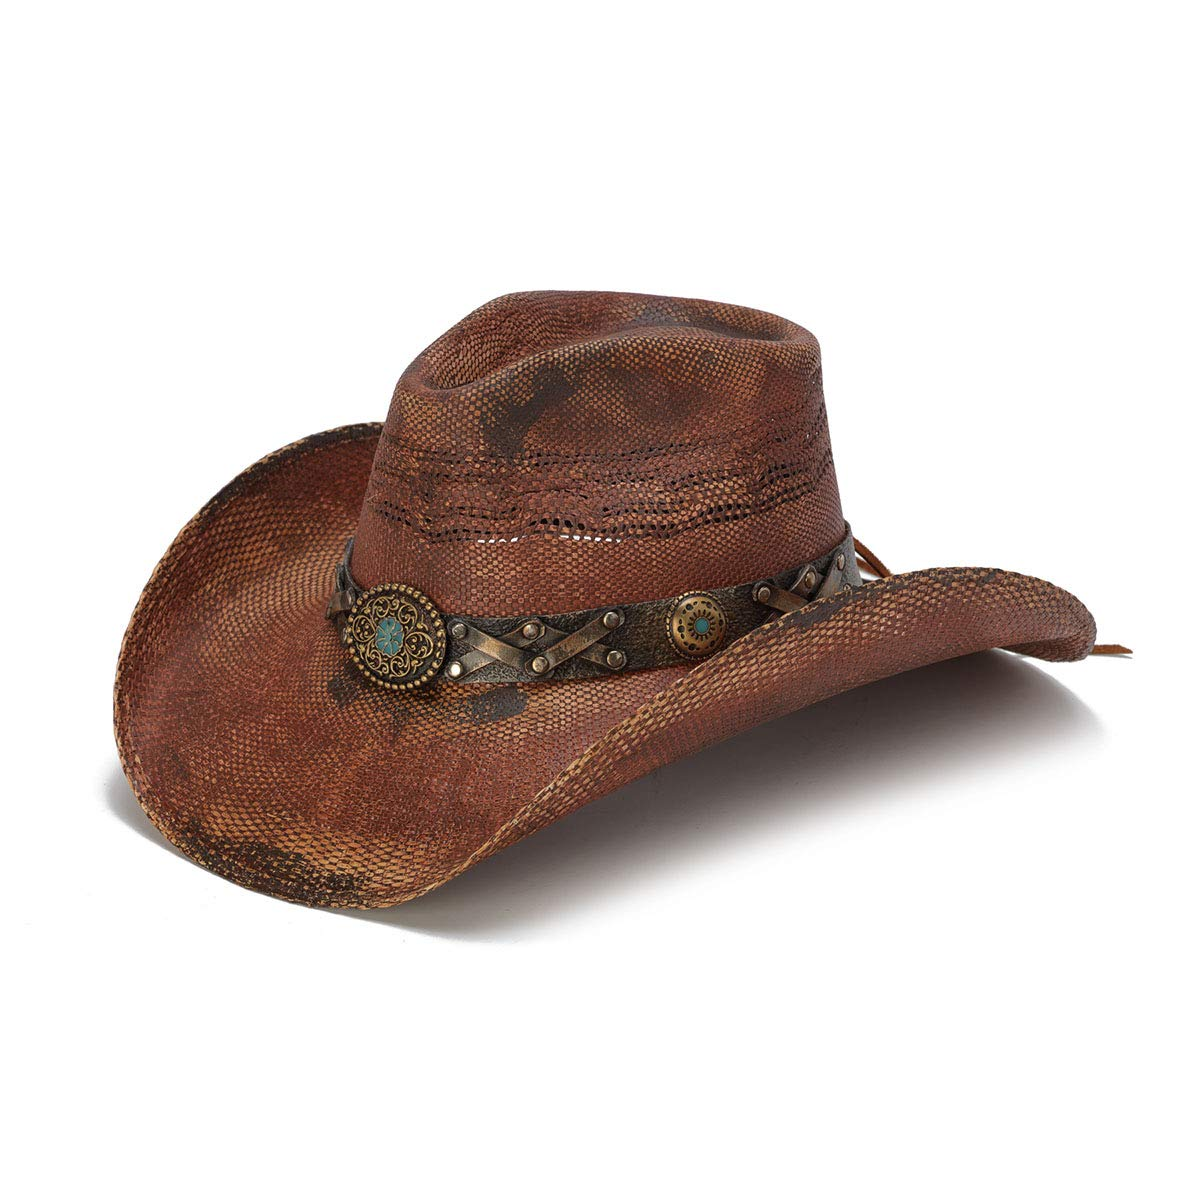 Stampede Hats Women's Cowgirl Drim Rustic Cowboy Hat with Turquoise Stone S Red